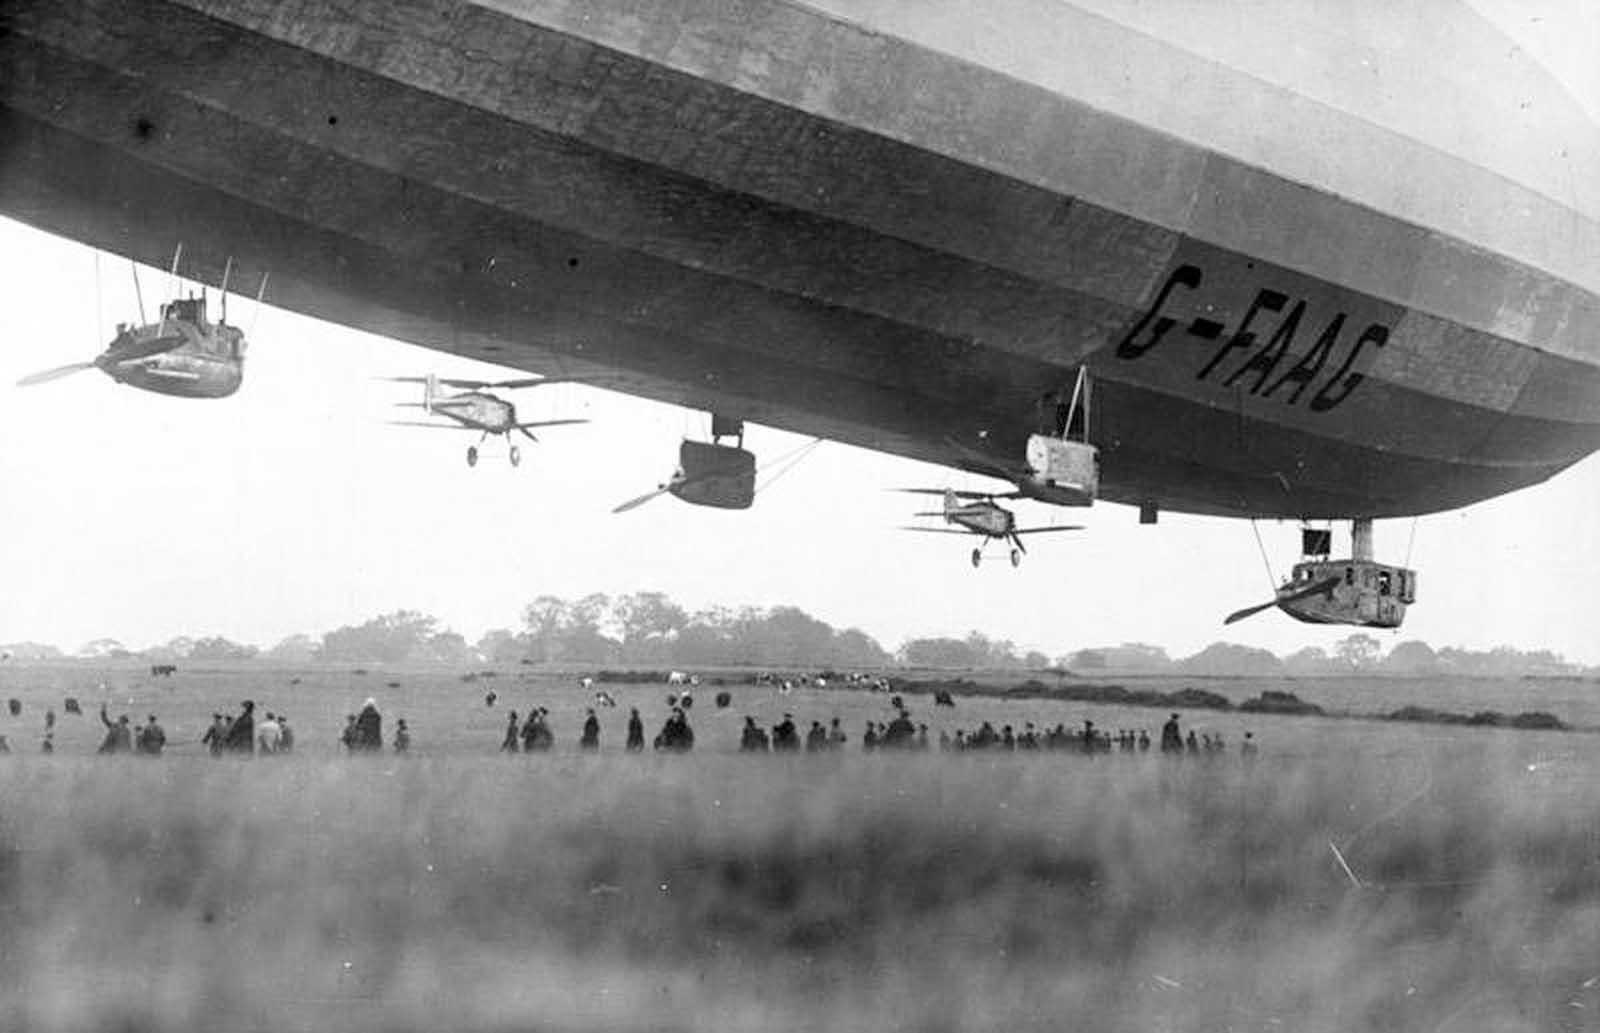 A pair of Gloster Grebe fighter planes, tethered to the underside of the British Royal Navy airship R33, in October of 1926.